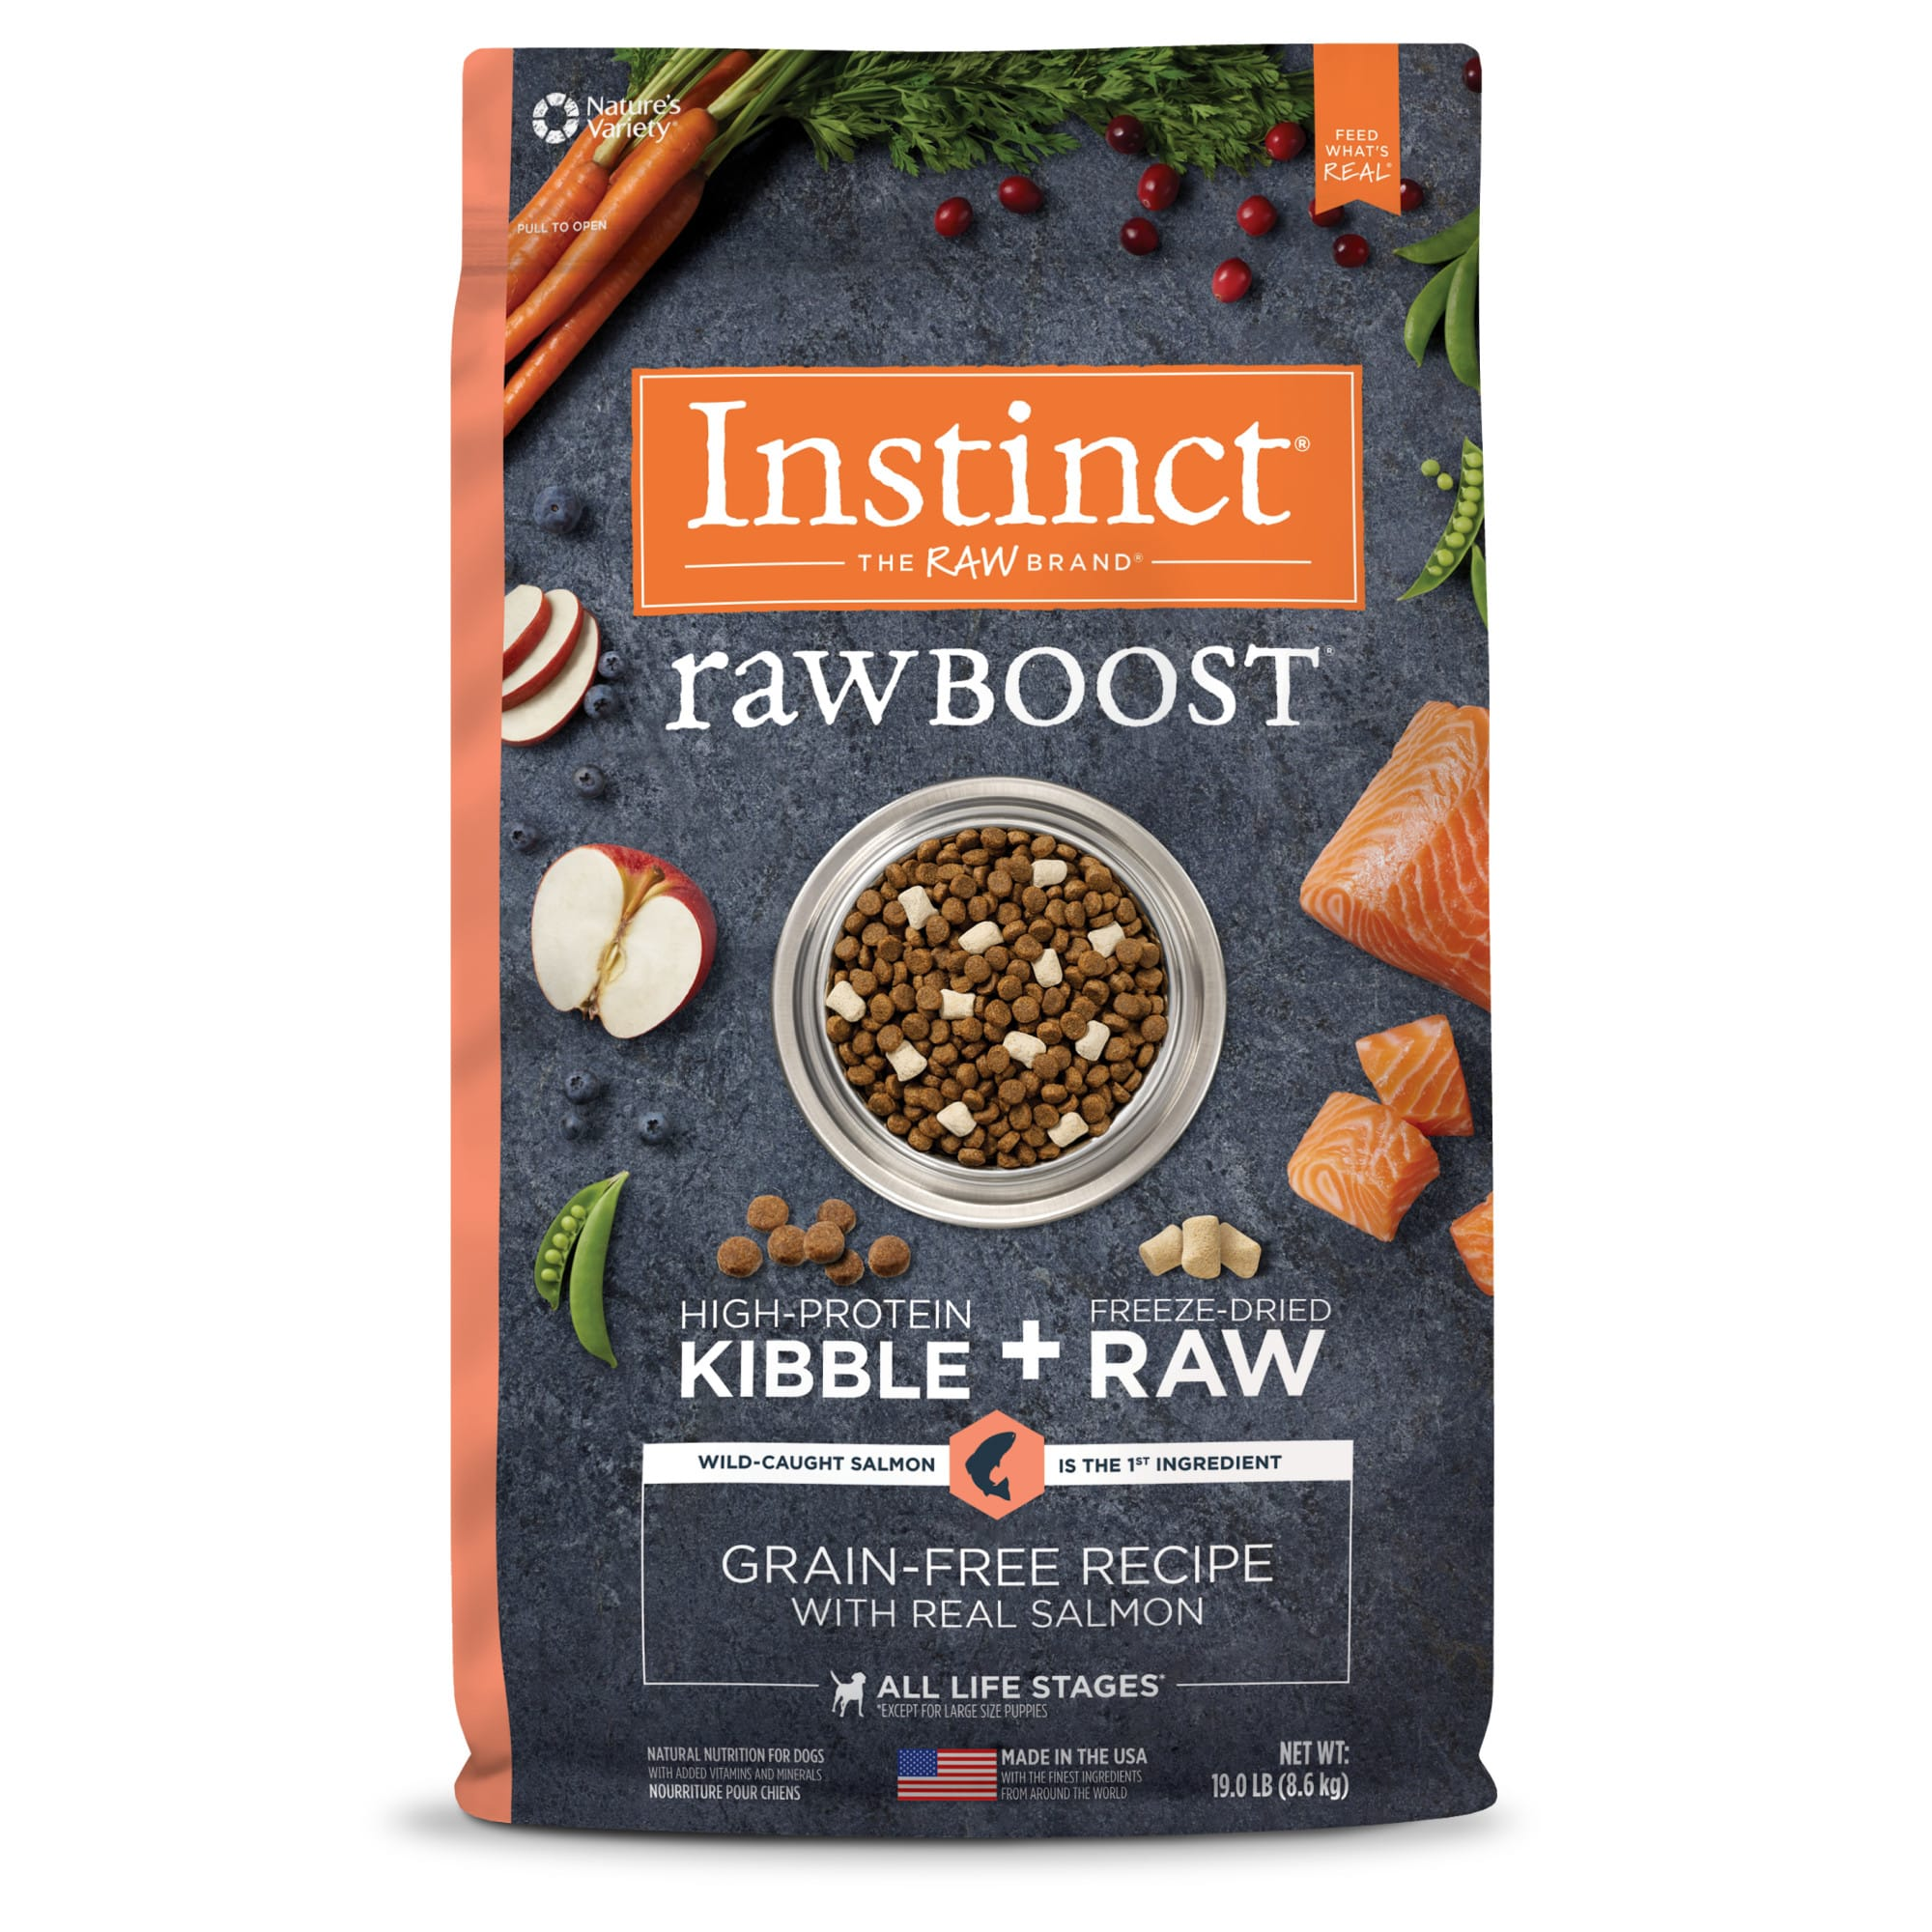 Instinct Raw Boost Grain-Free Recipe with Real Salmon Dry Dog Food with Freeze-Dried Raw Pieces